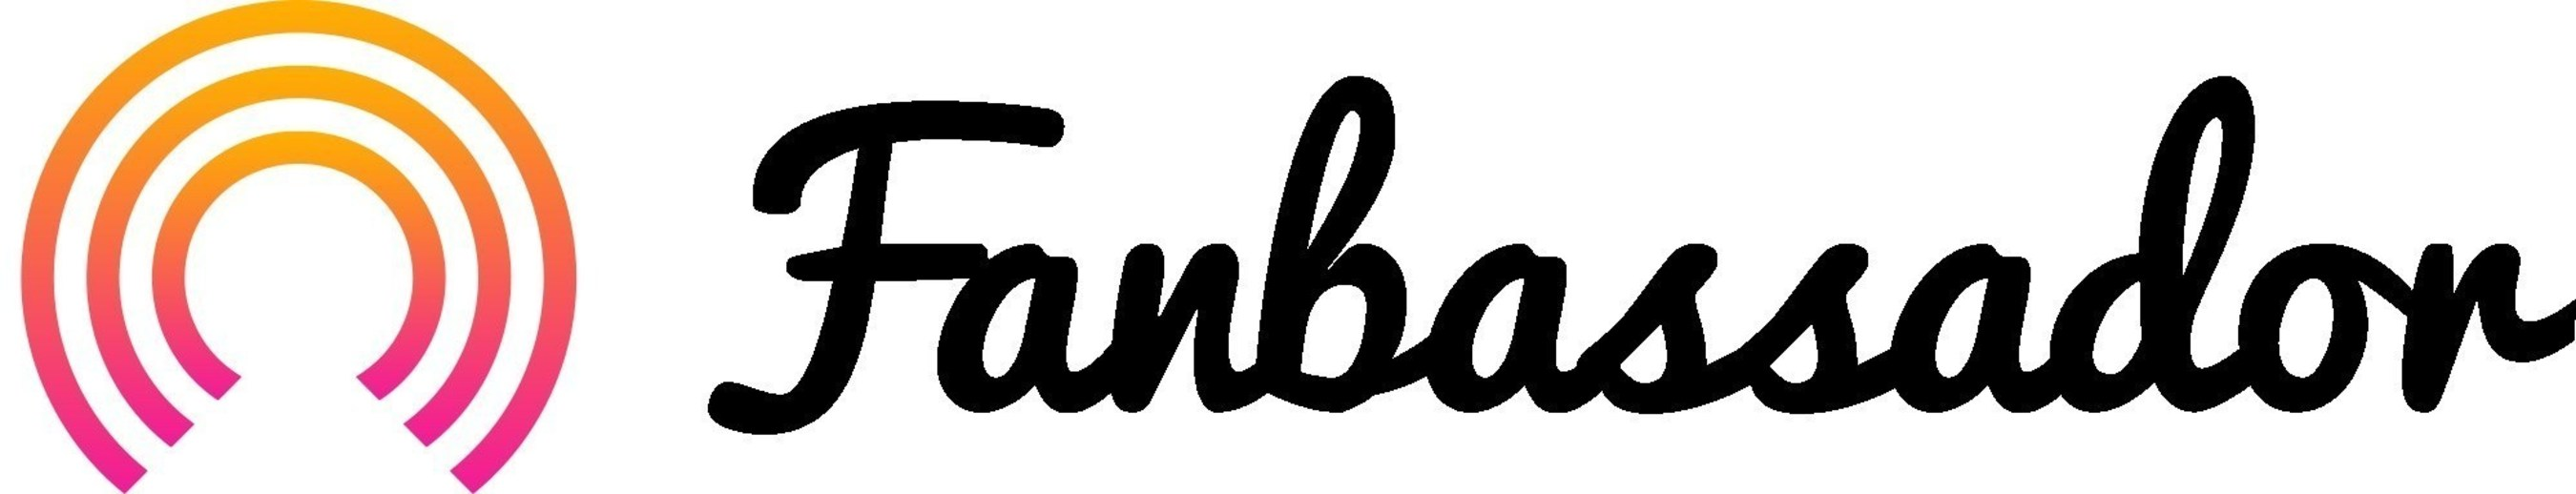 Fanbassador Announces The Launch Of Brand New Music Site and Touring Platform